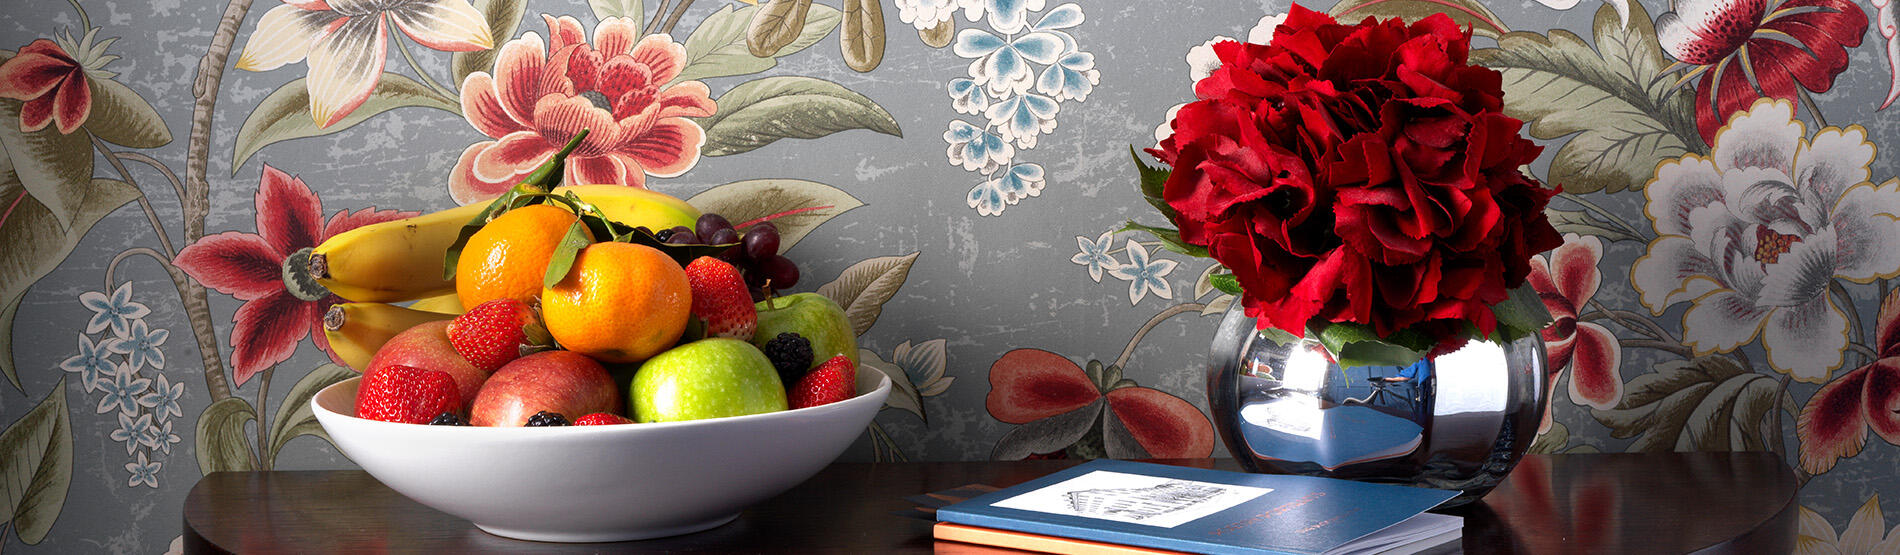 A vase of red flowers and bowl of oranges, bananas, apples and strawberries on a wood table